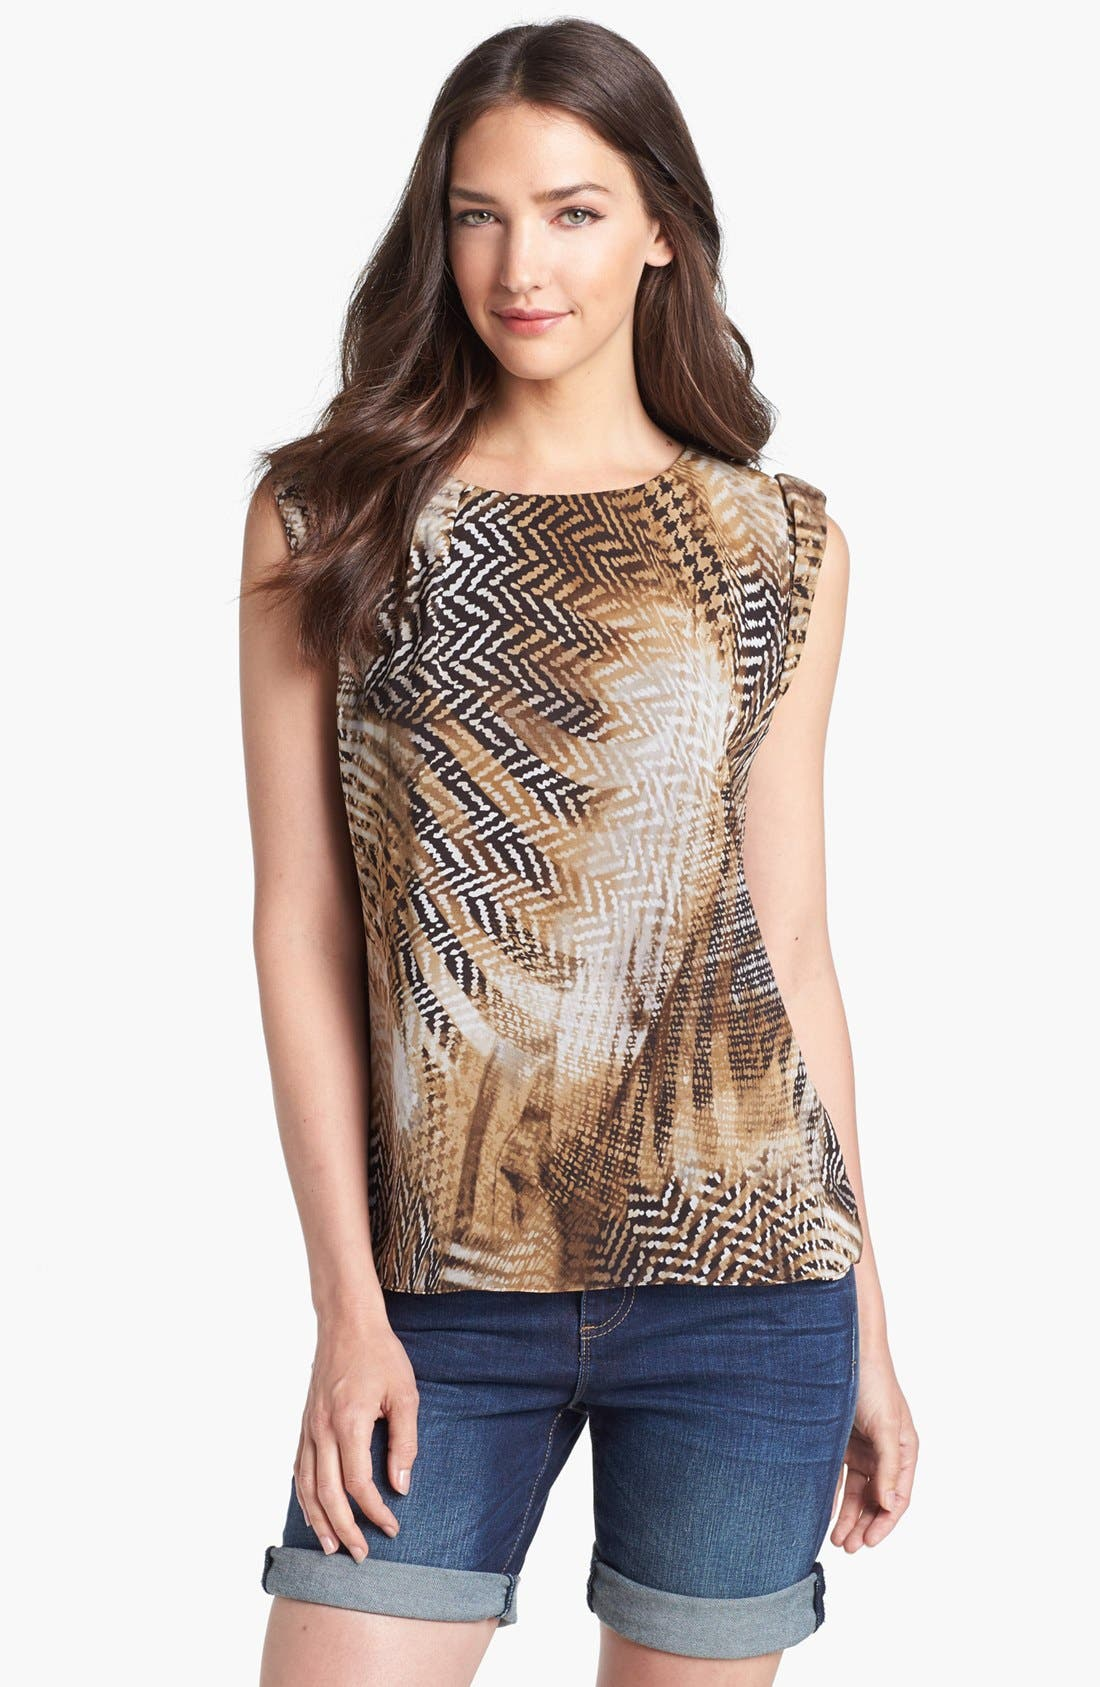 Alternate Image 1 Selected - Vince Camuto Boatneck Herringbone Print Blouse ( Petite)